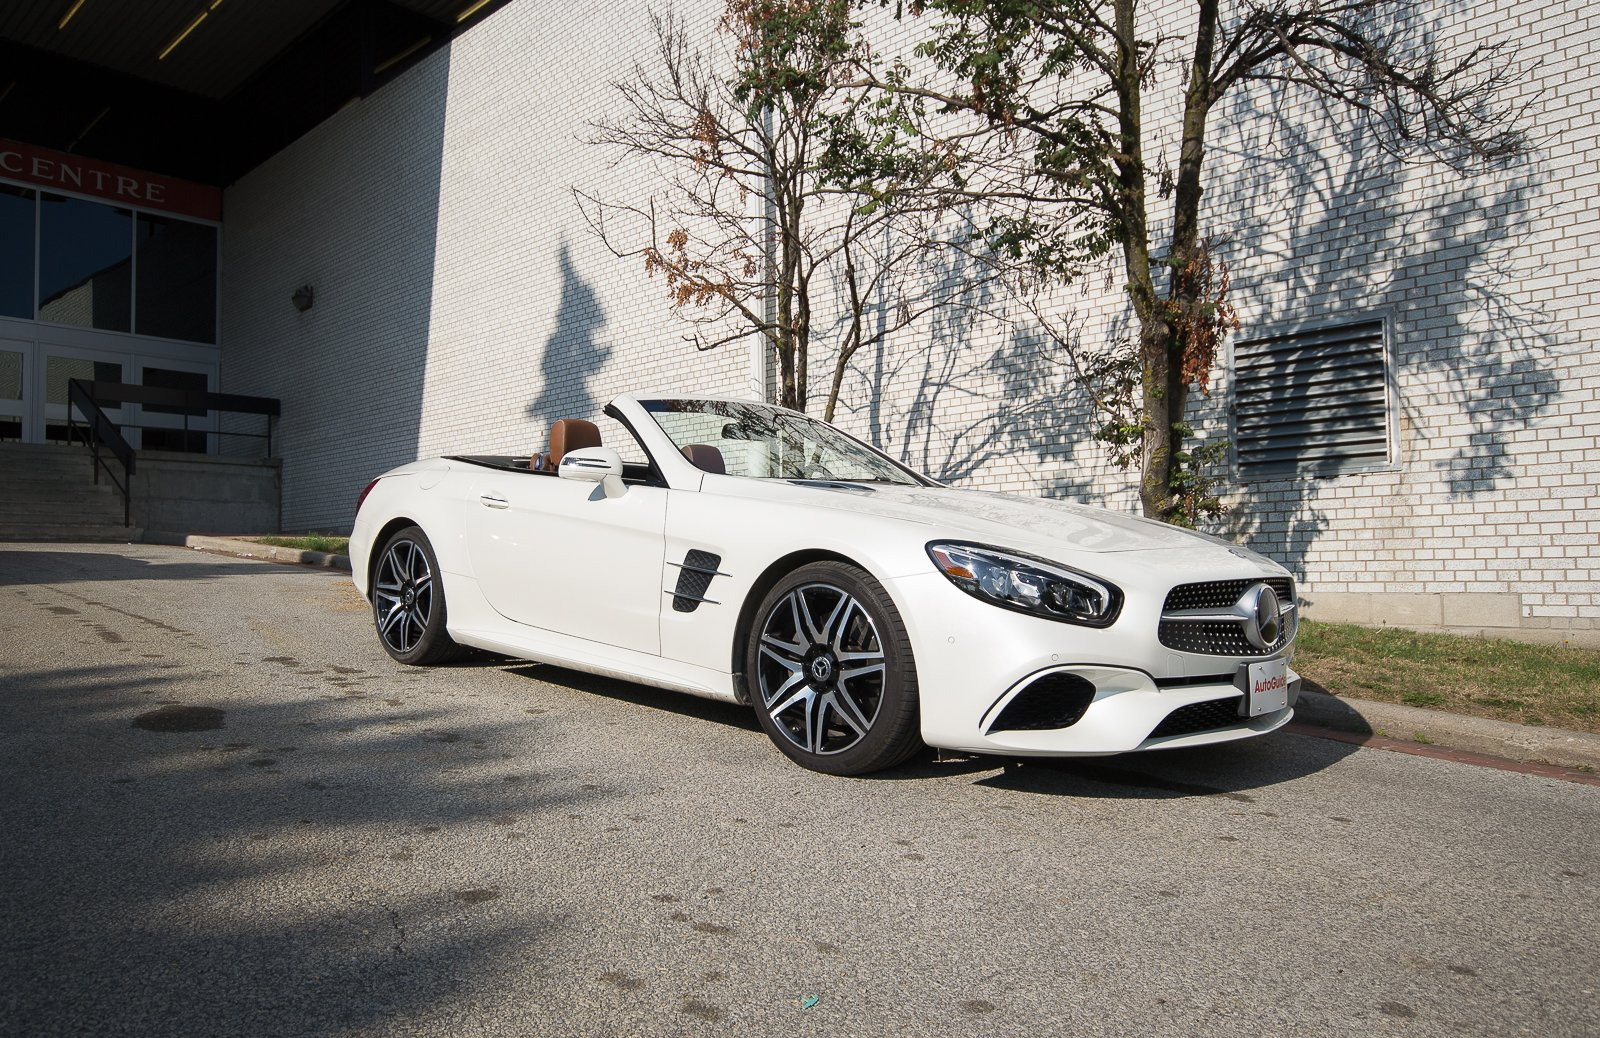 Twin City Auto >> 2017 Mercedes-Benz SL550 Review - AutoGuide.com